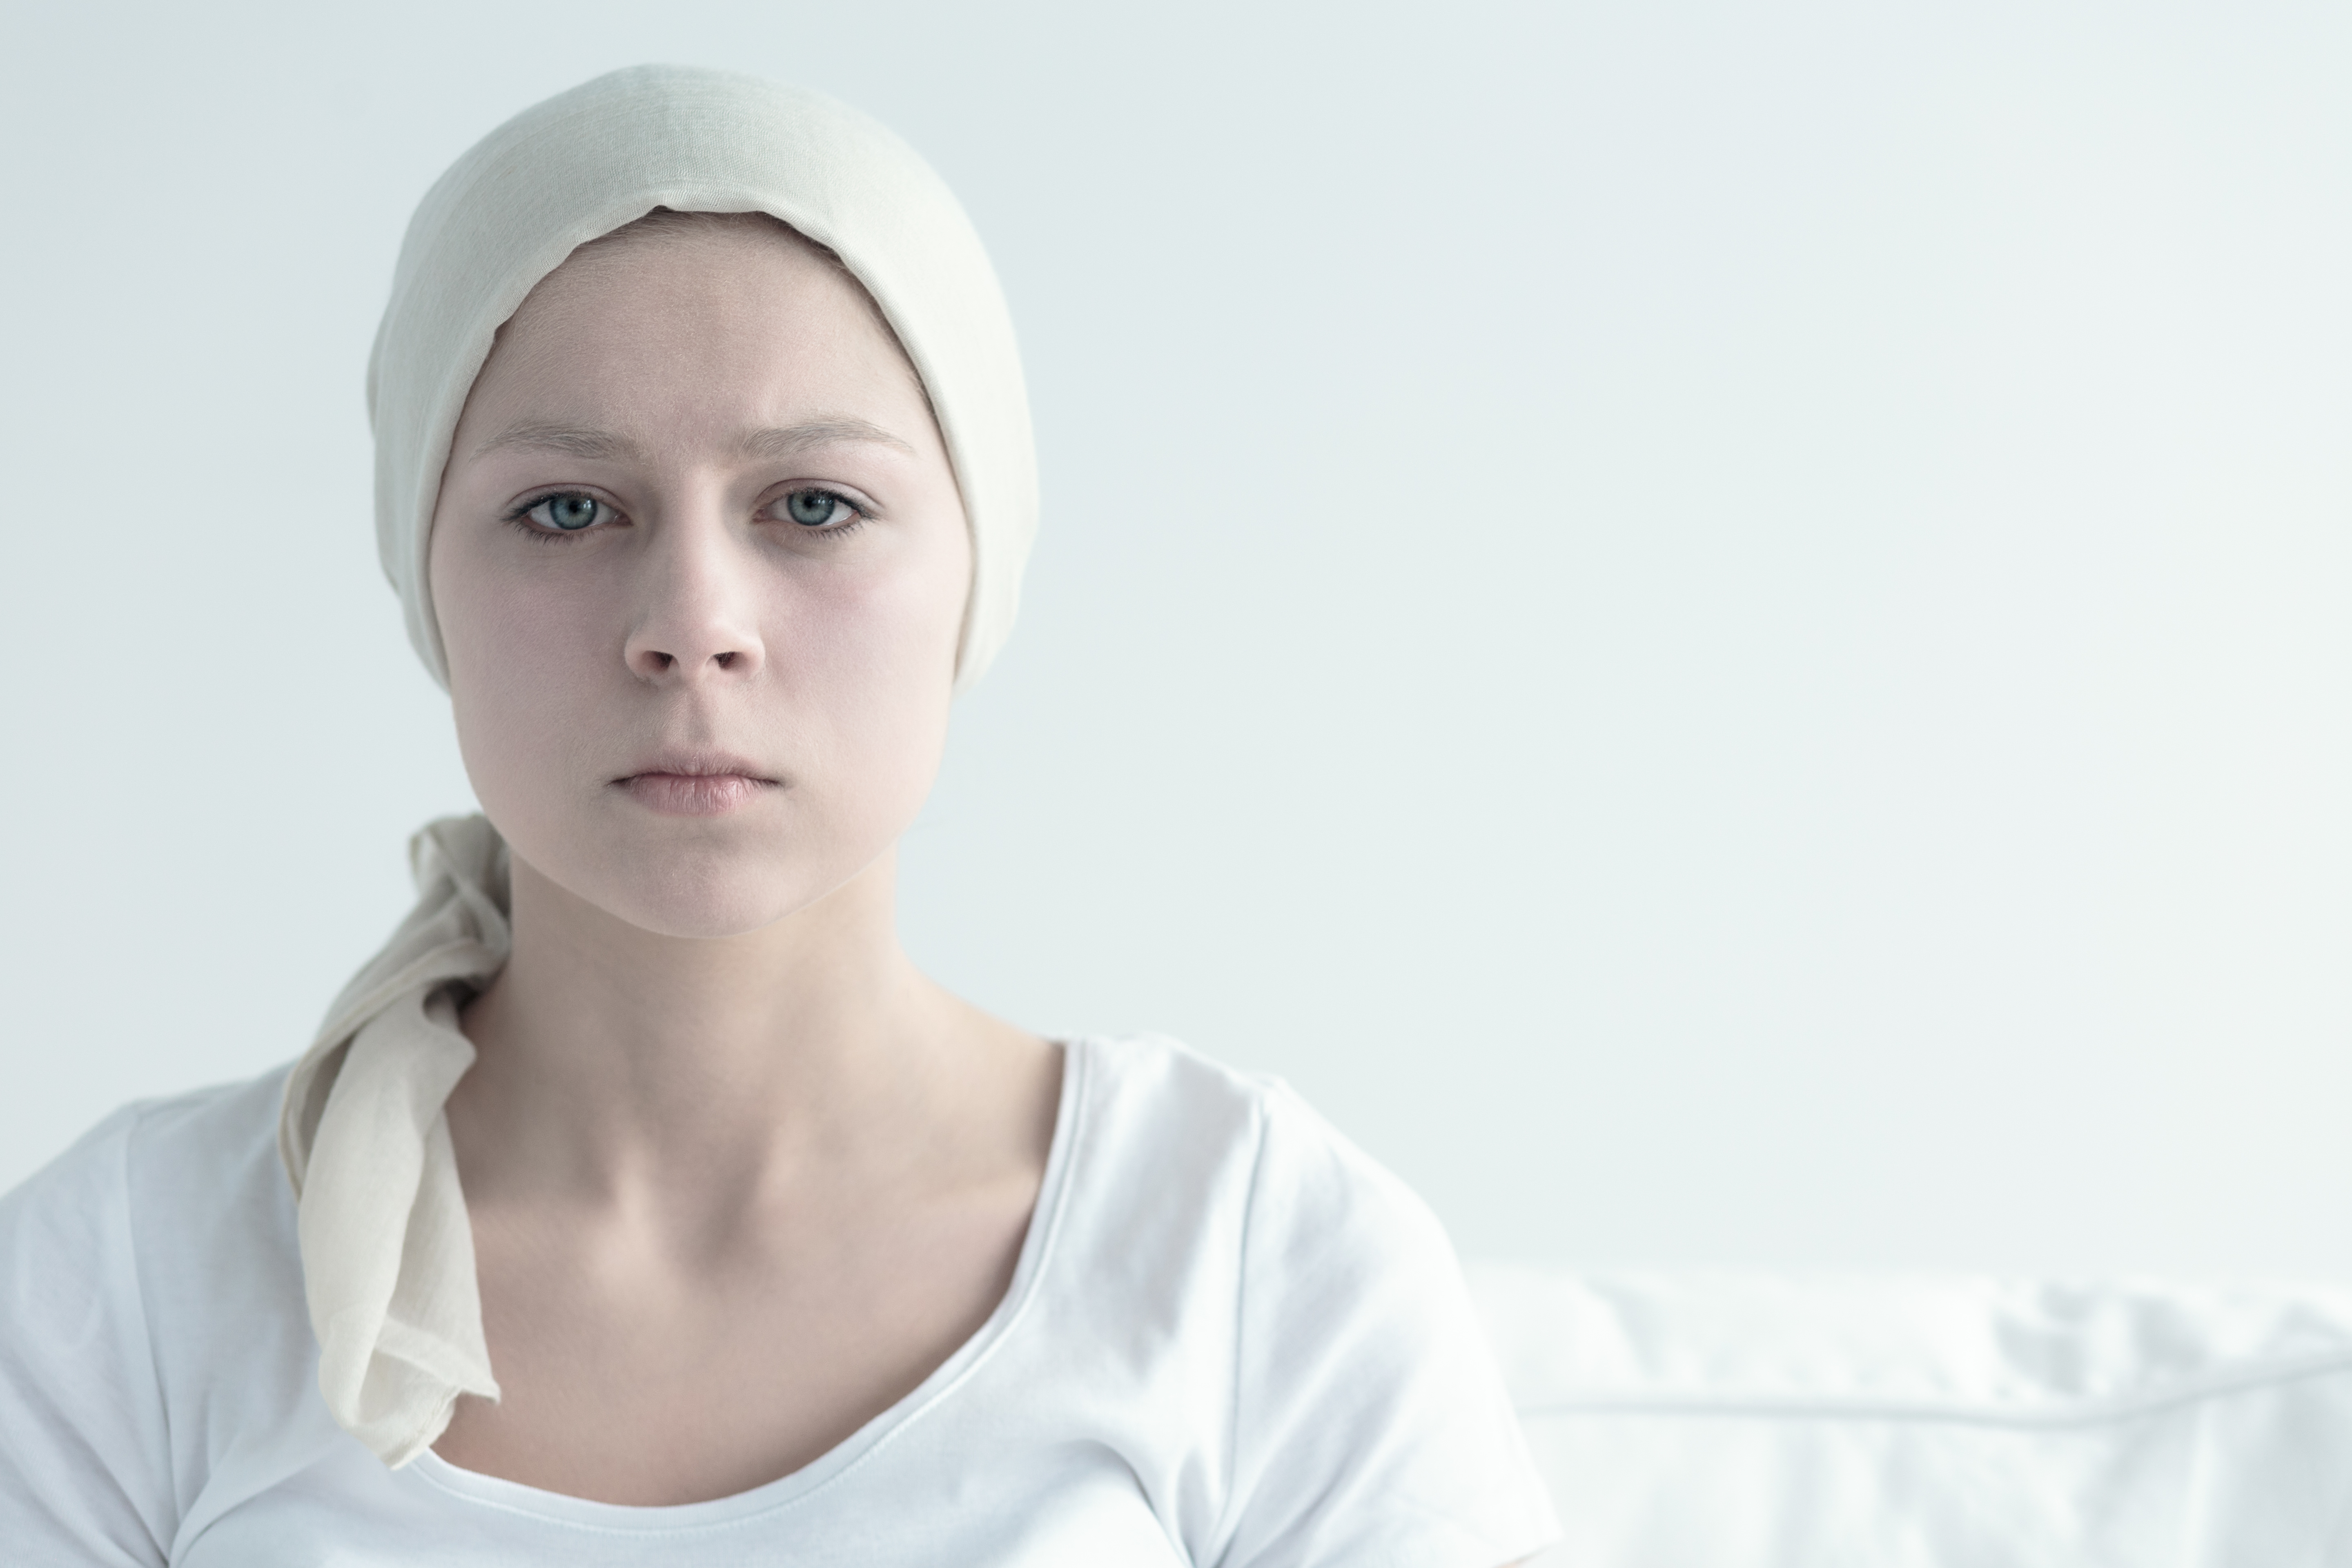 Girl with cancer staring straight forward with a serious look in her eyes